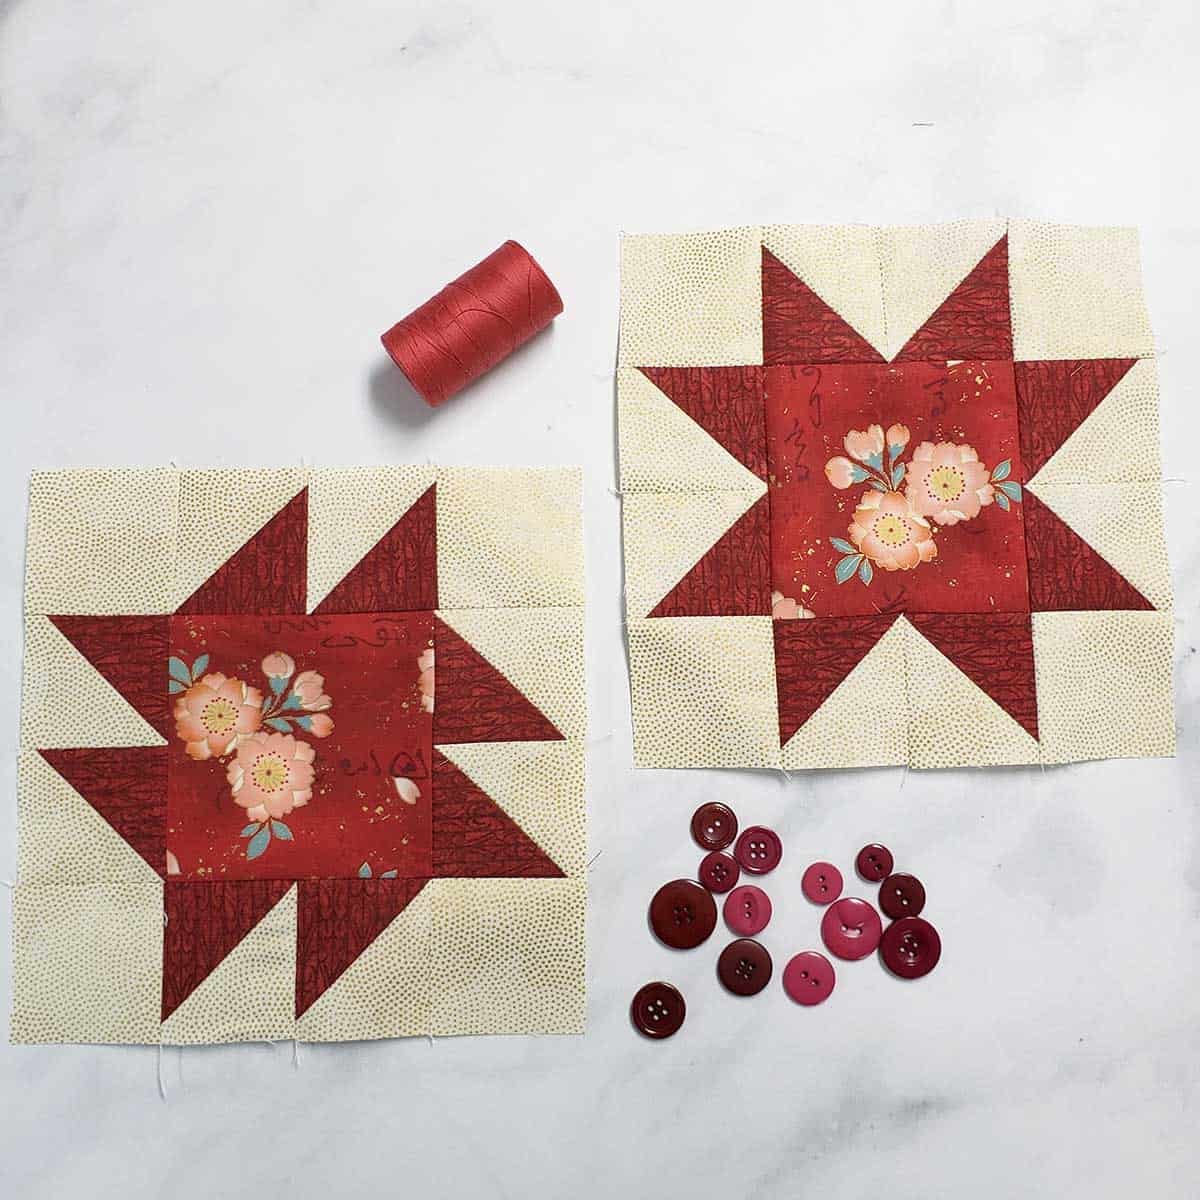 Both of the quilt blocks in red